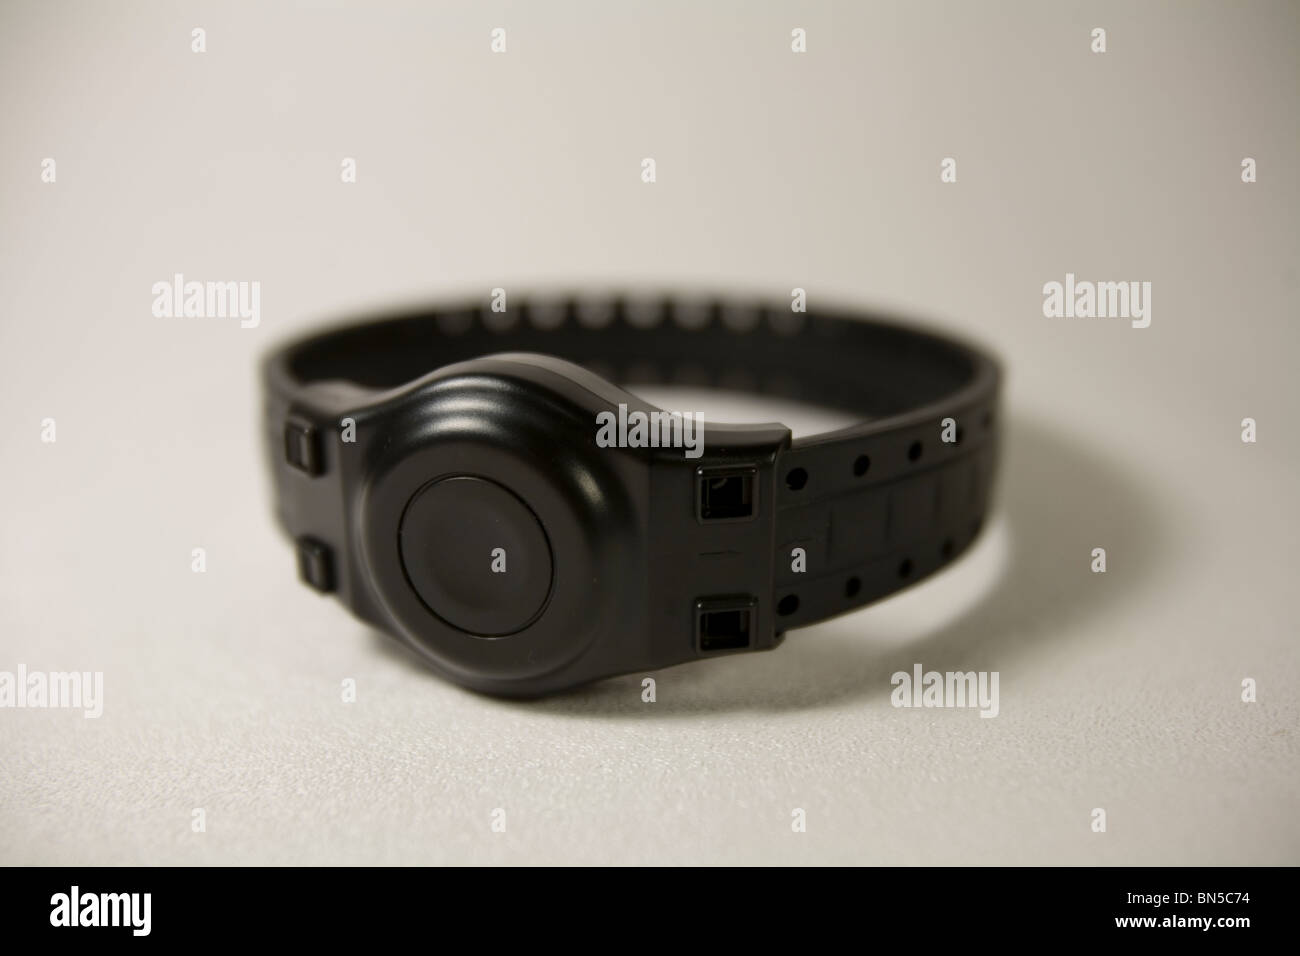 electronic his parole wears ankle photos monitor on stock photo device prisoner monitoring arrest image bracelet an